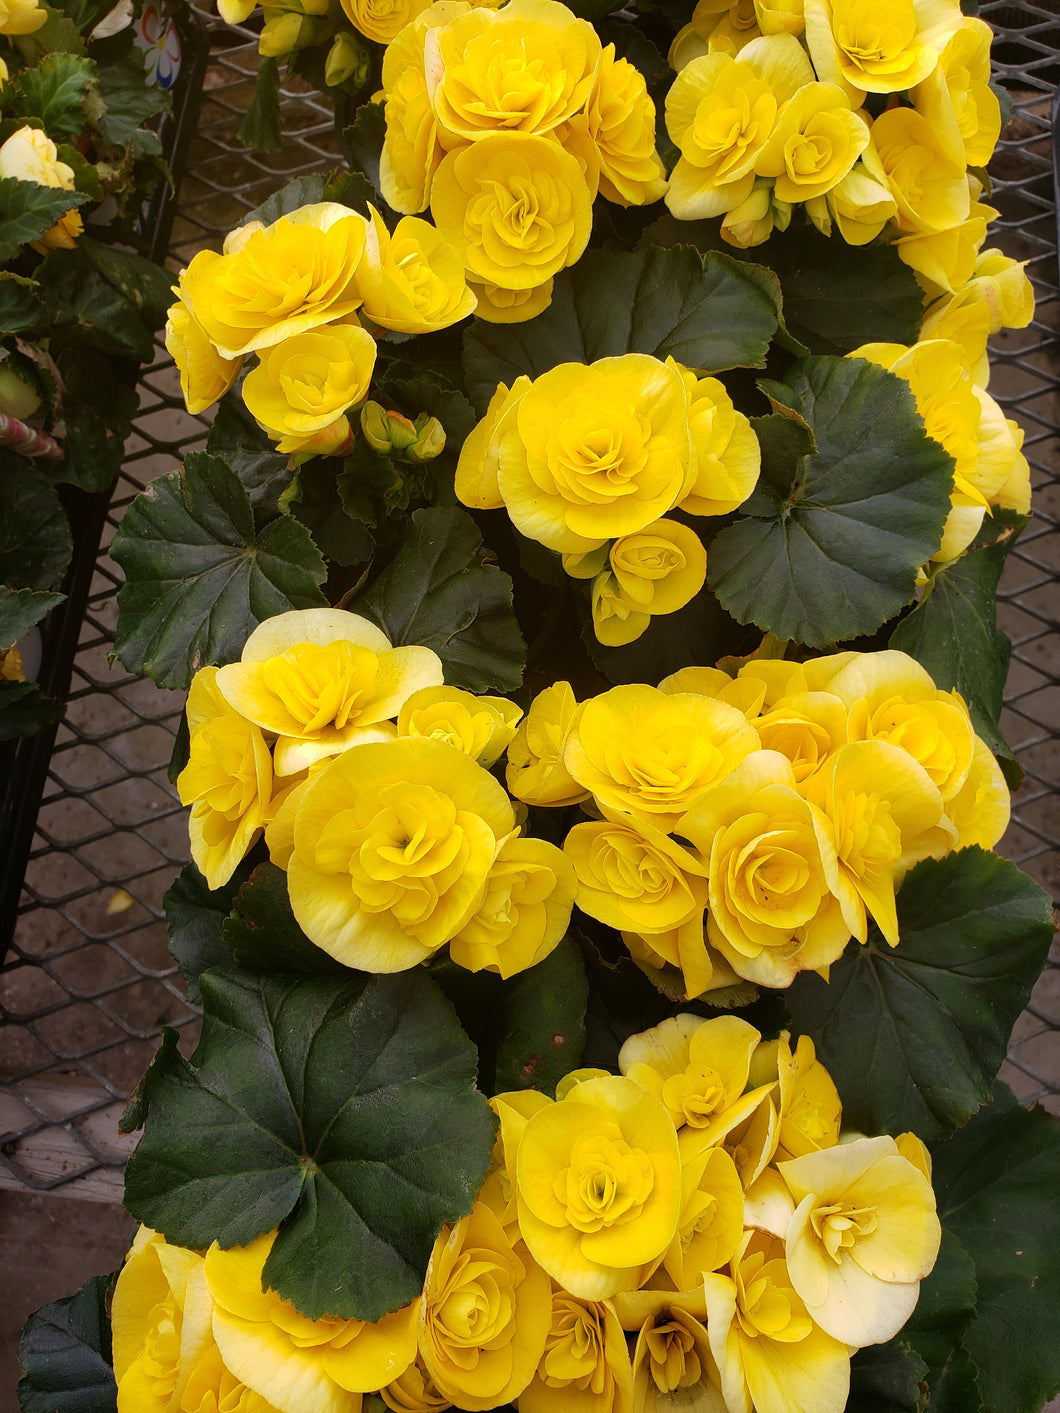 Rieger Begonia - 4 inch pot - yellow